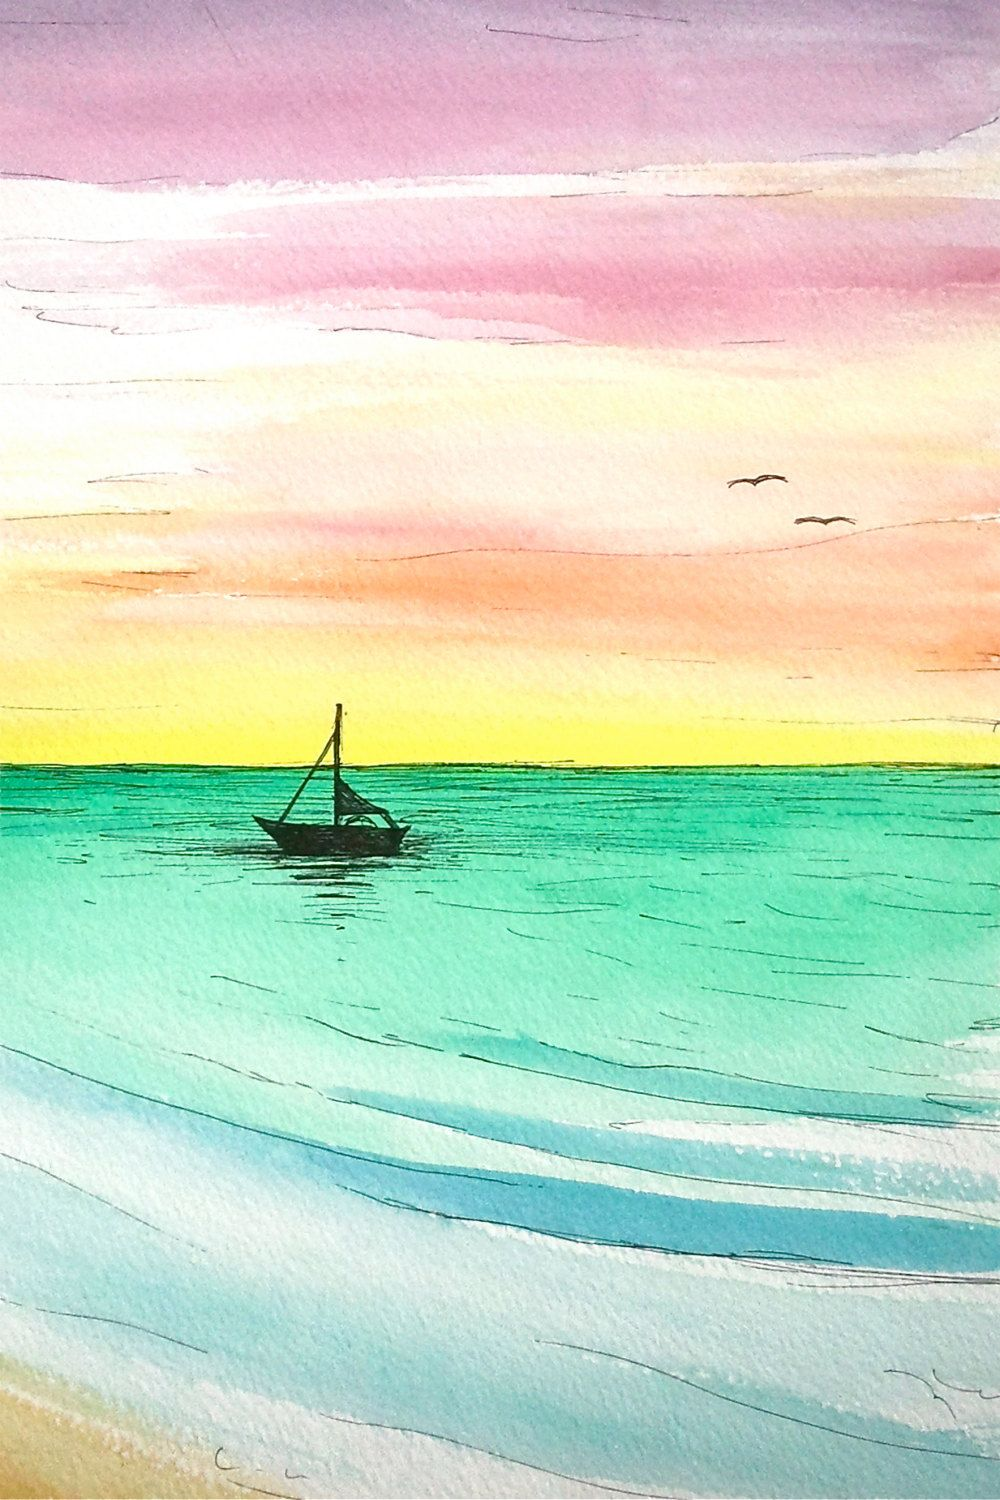 Skye Ravy Painting Rainbow Sunrise Over Calm Ocean Original